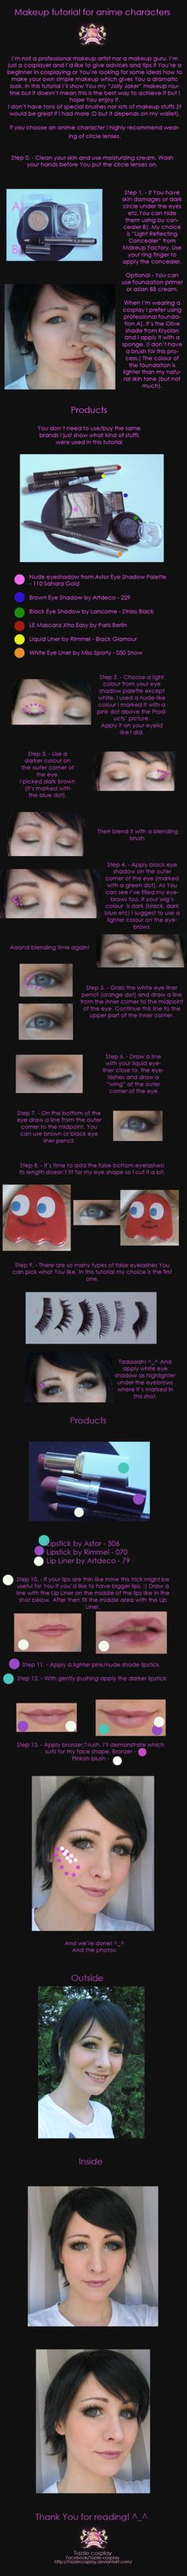 Cosplay makeup tutorial for anime characters by Tazziecosplay.deviantart.com on @DeviantArt